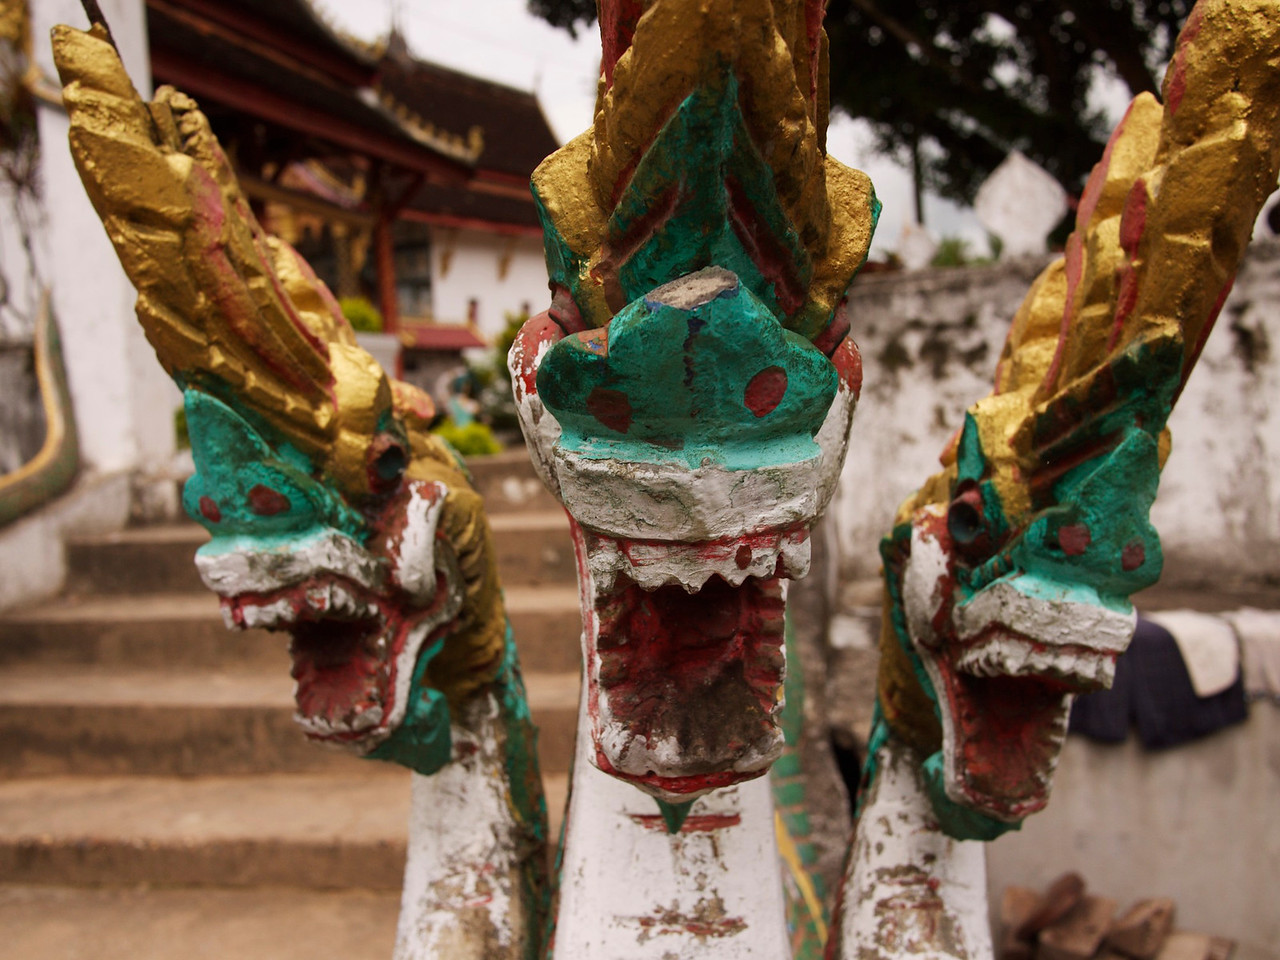 nagas!  the river serpent that serves as protector in lao buddhism.